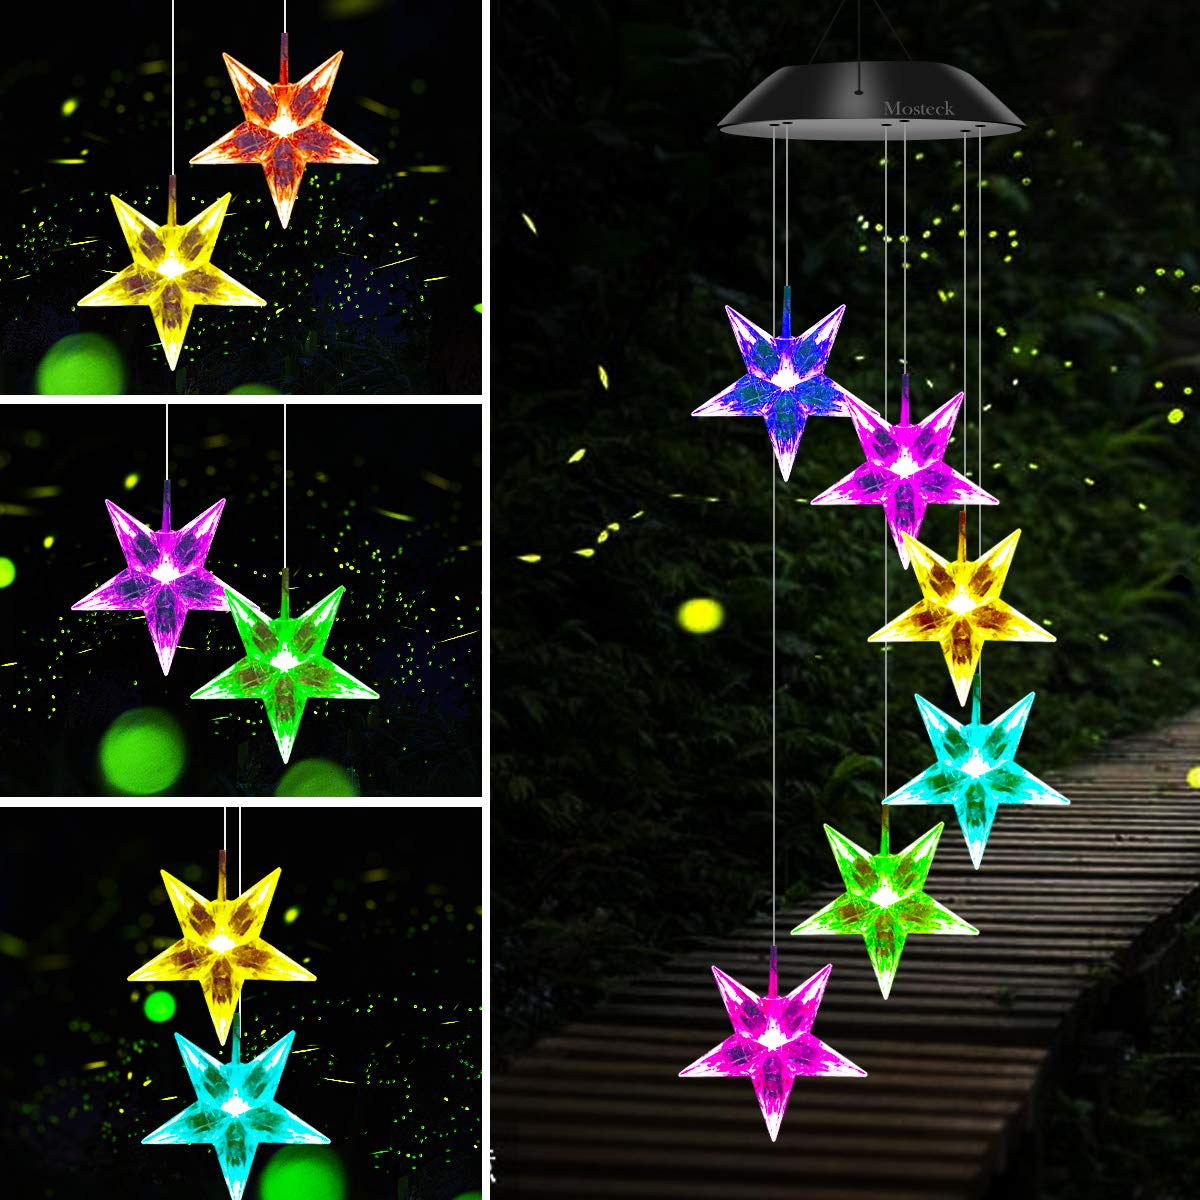 Mosteck Wind Chime Solar Wind Chimes Outdoor Color Changing Hummingbird Chimes Mobile Led Star Wind Chimes